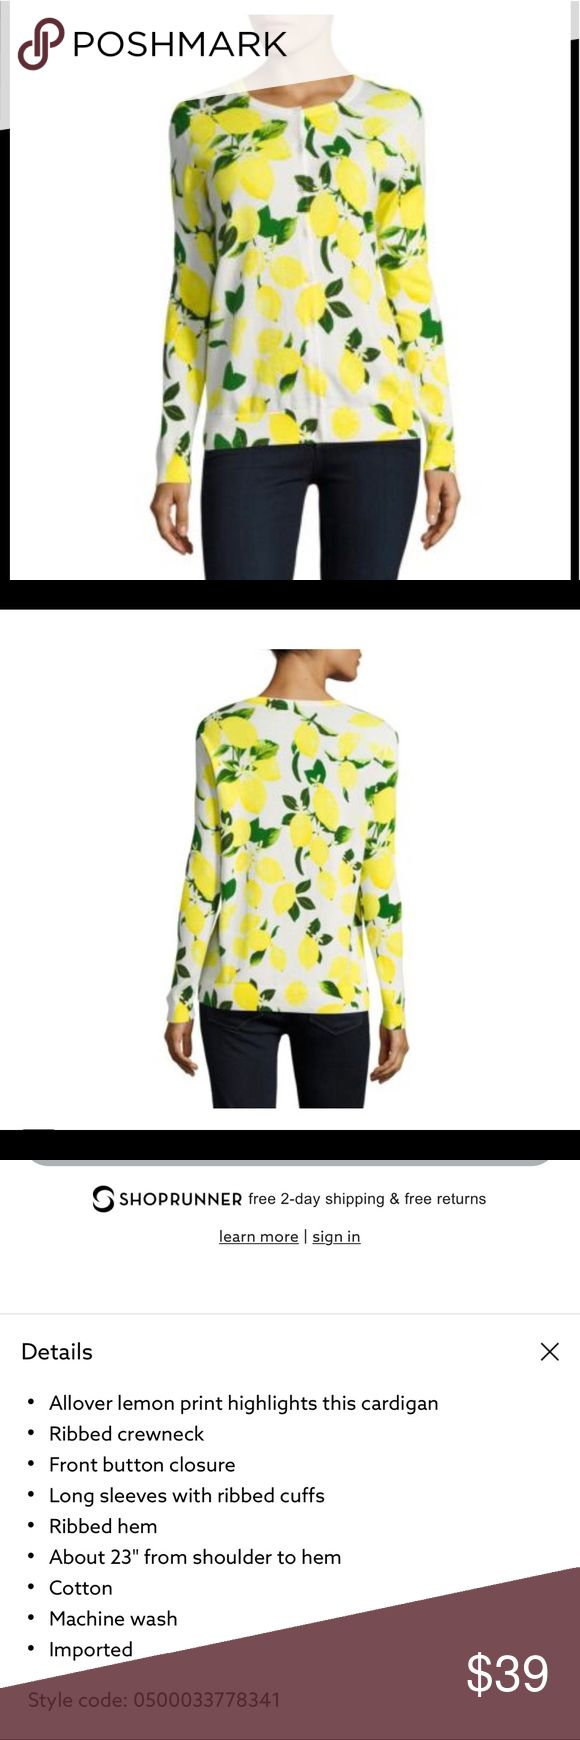 Lord&taylor yellow lemon cardigan new M New without tags.   Length 24 Armpit 18 Sleeve 25  Cotton  No smoke, no pets here 😊 Lord & Taylor Sweaters Cardigans